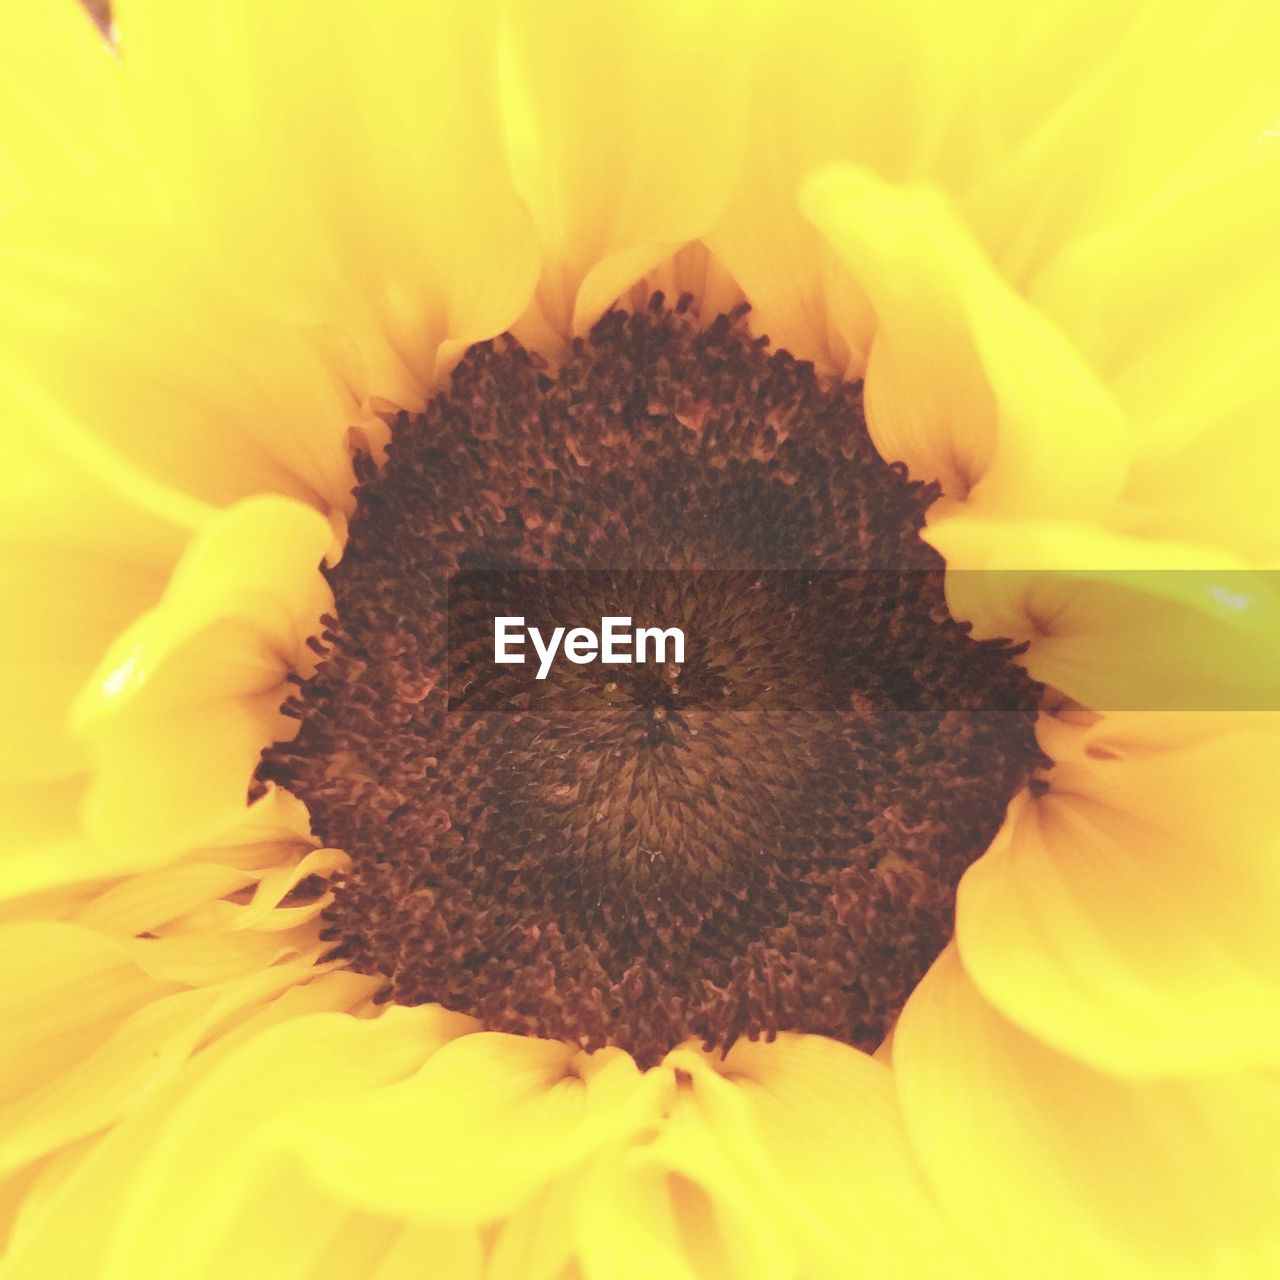 flower, petal, fragility, flower head, nature, freshness, beauty in nature, pollen, close-up, yellow, full frame, sunflower, backgrounds, growth, no people, plant, blooming, outdoors, day